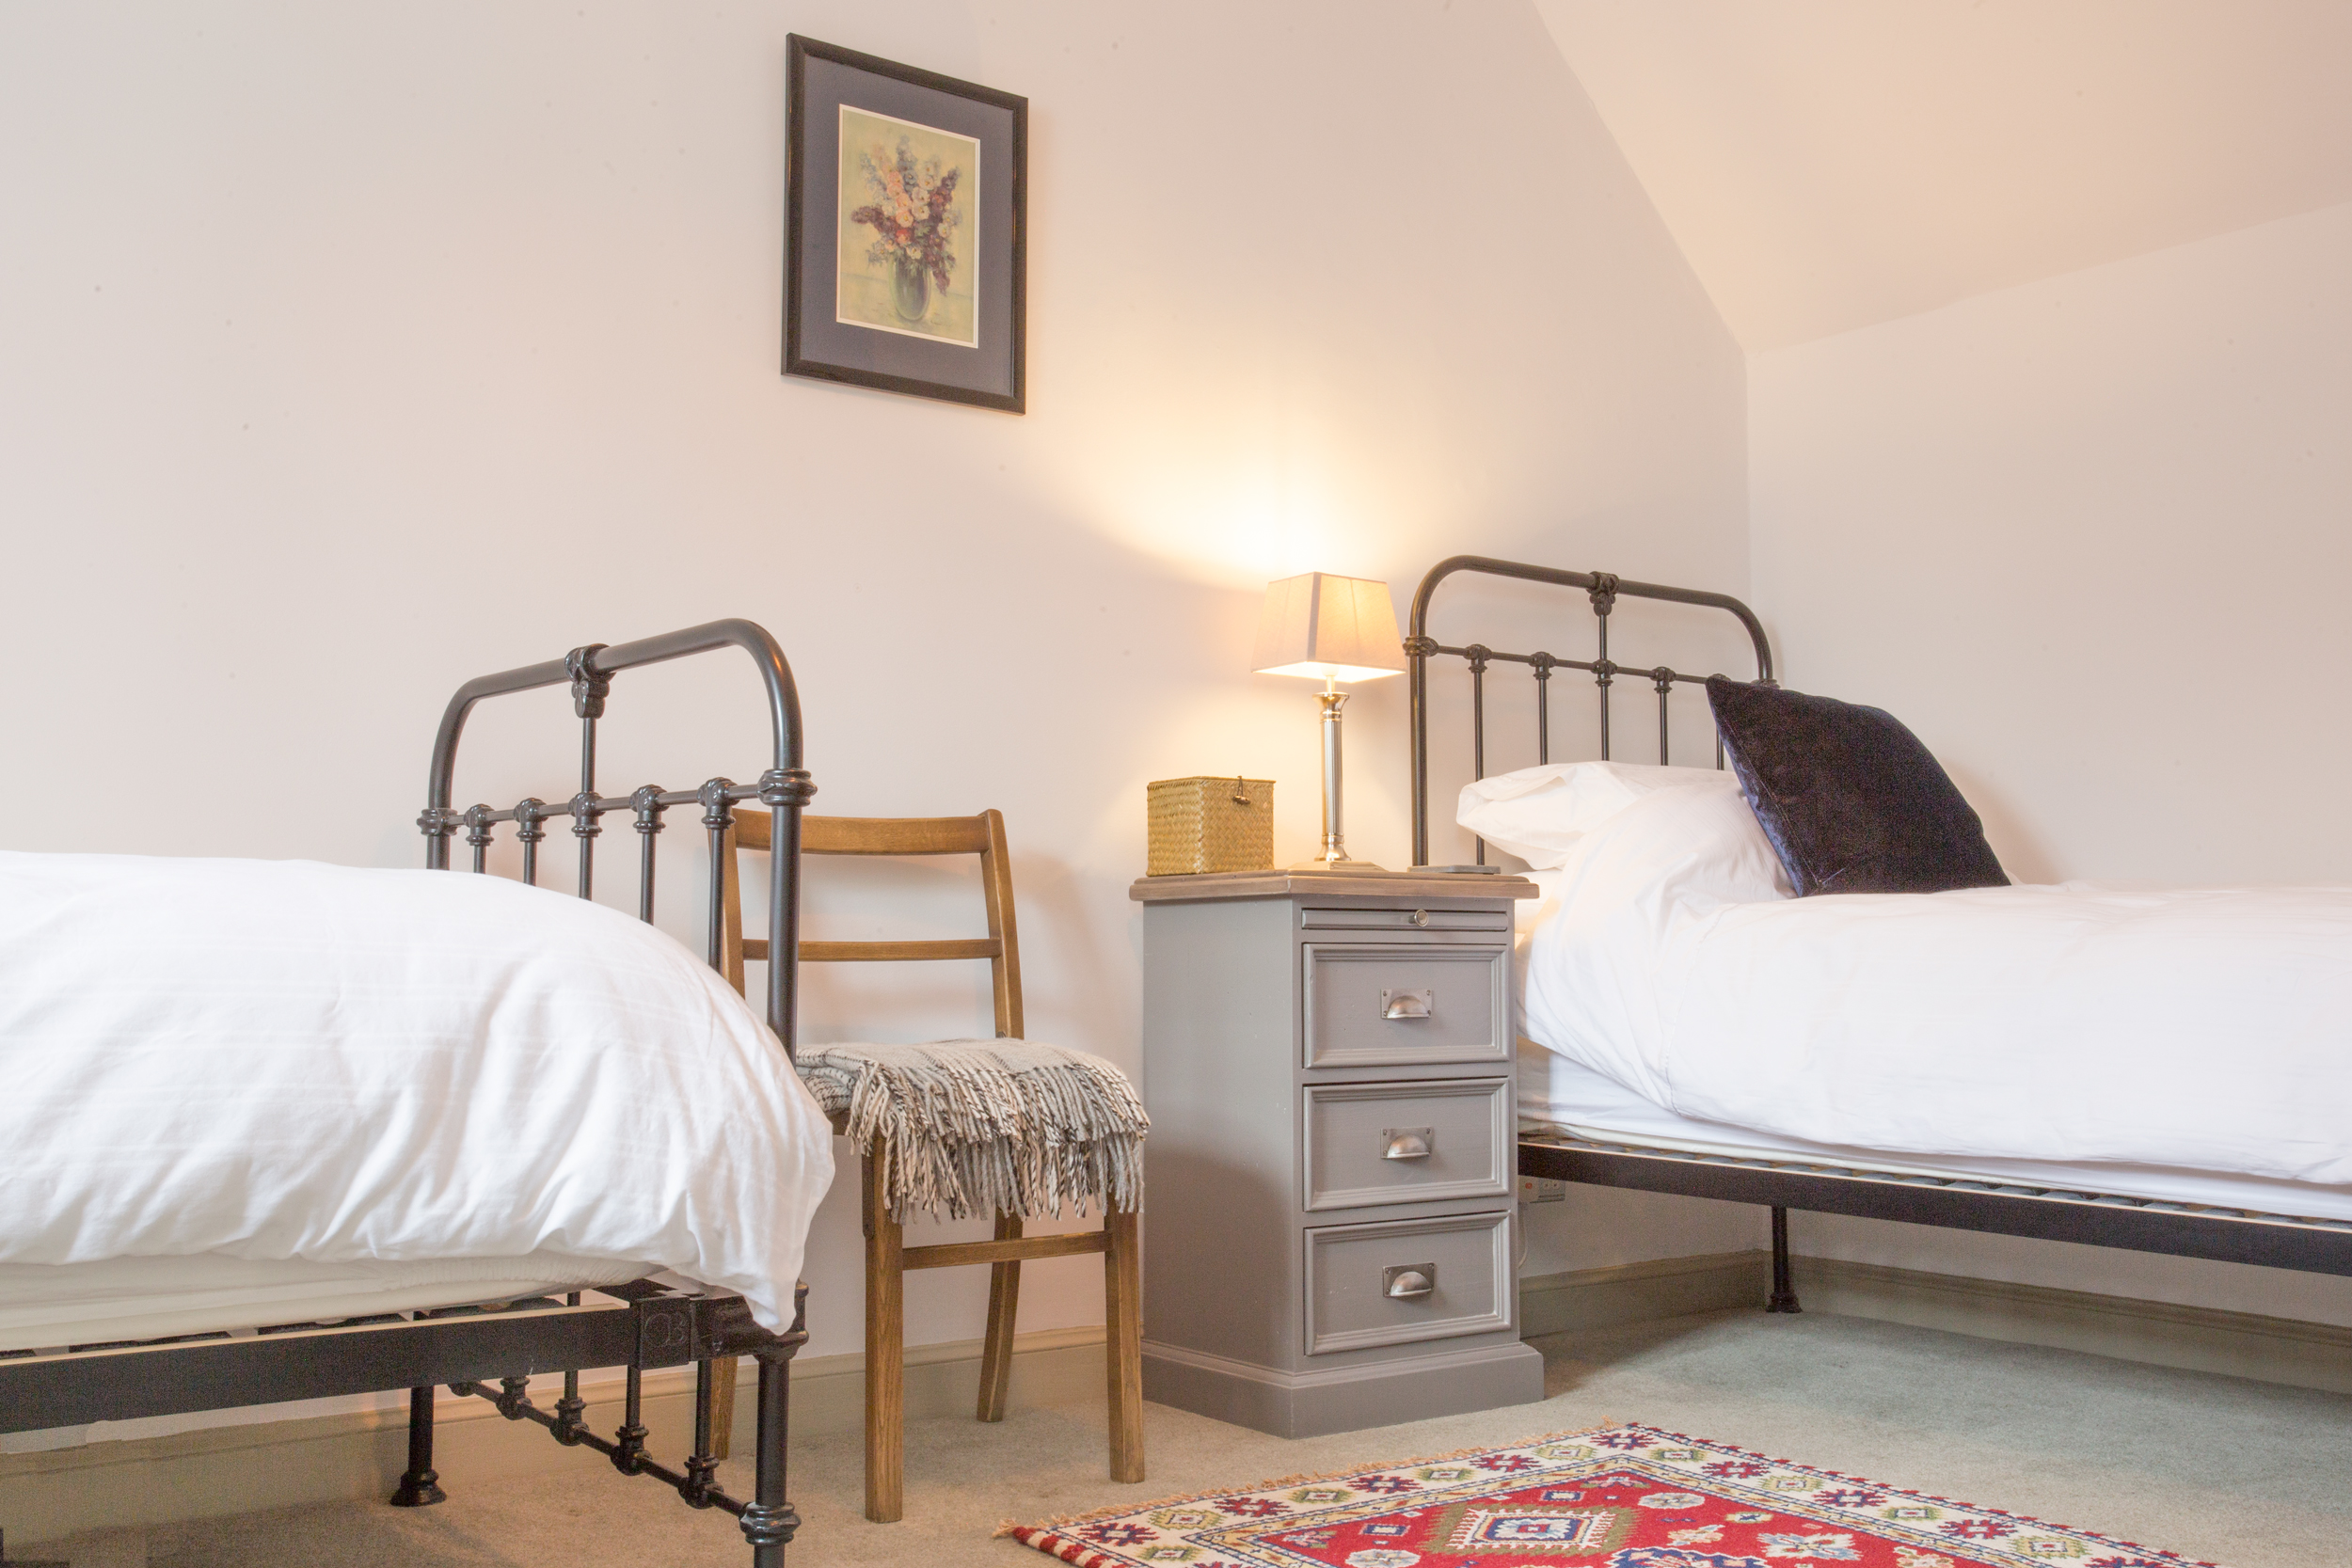 gorgeous cottages for families in the countryside near Alnwick, Alnwick luxury holiday cottages